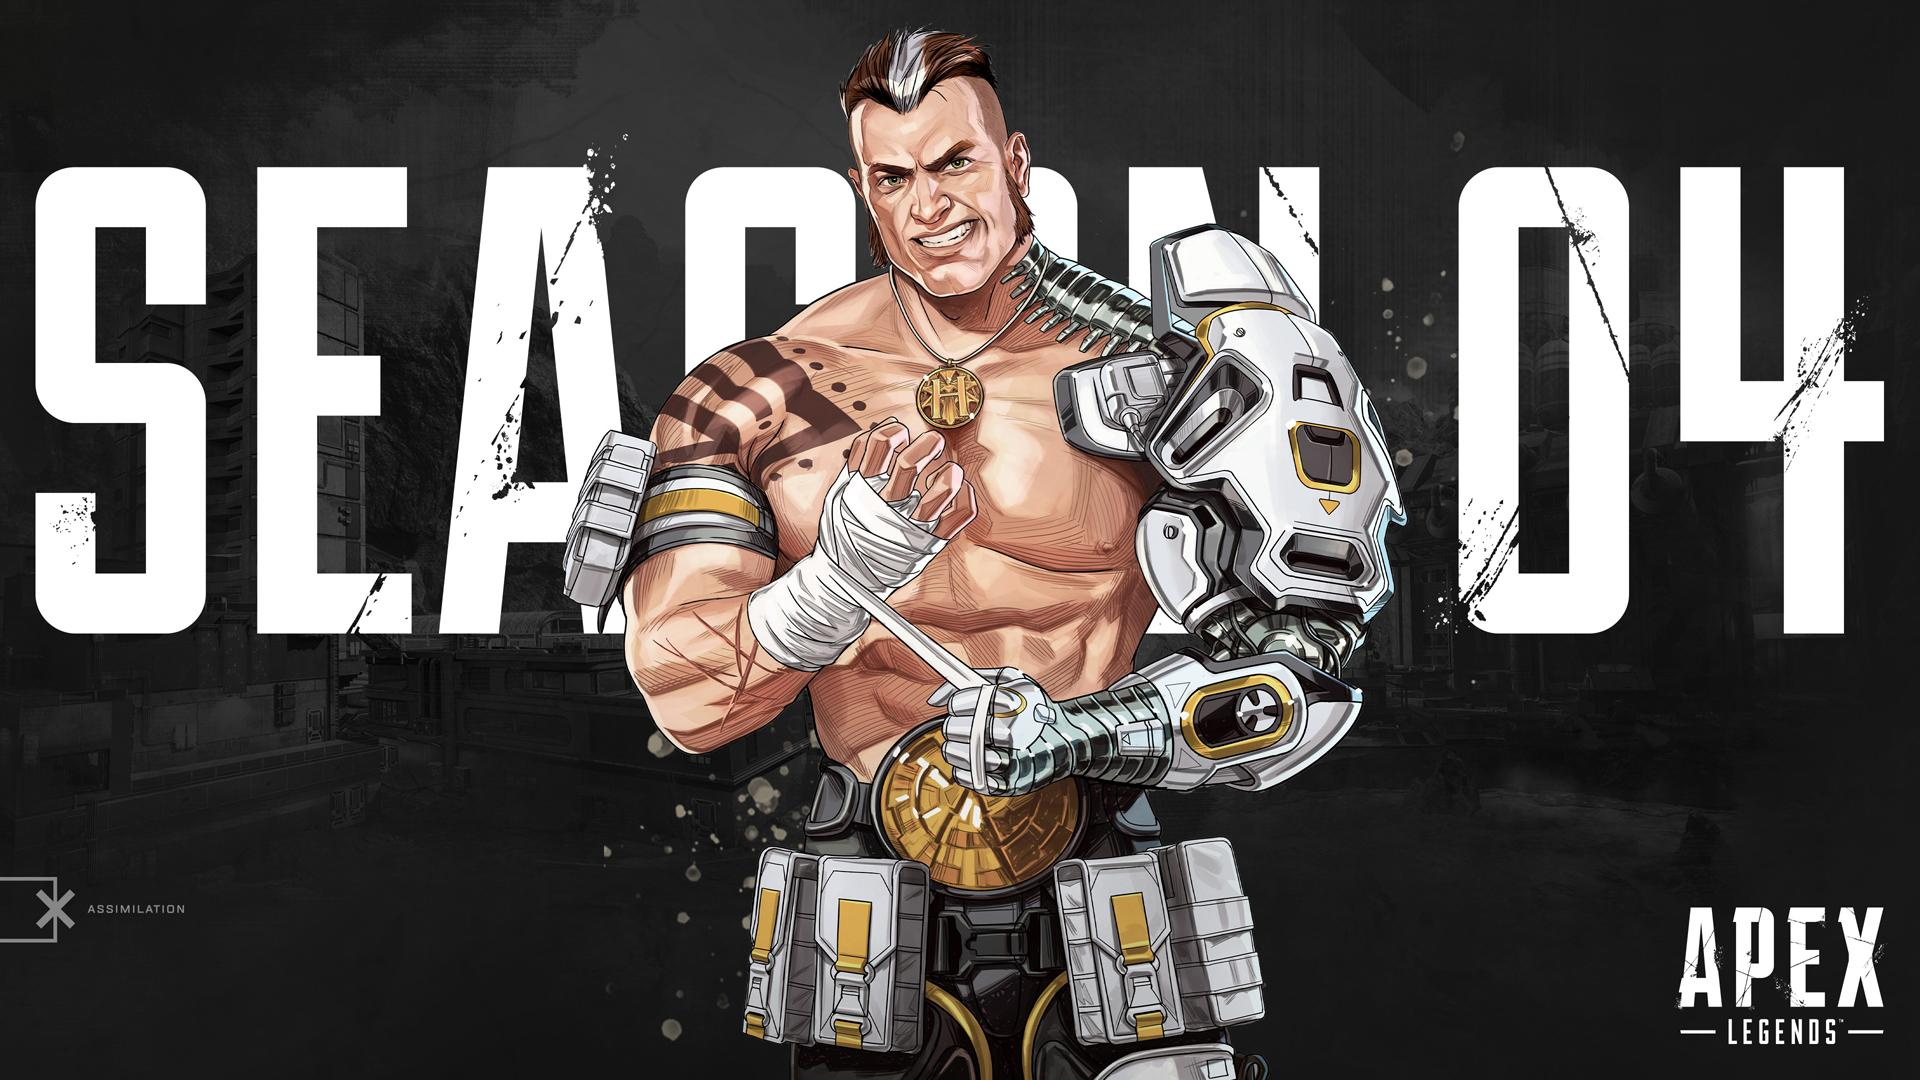 Apex Legends Season 4 will add new Champion Forge